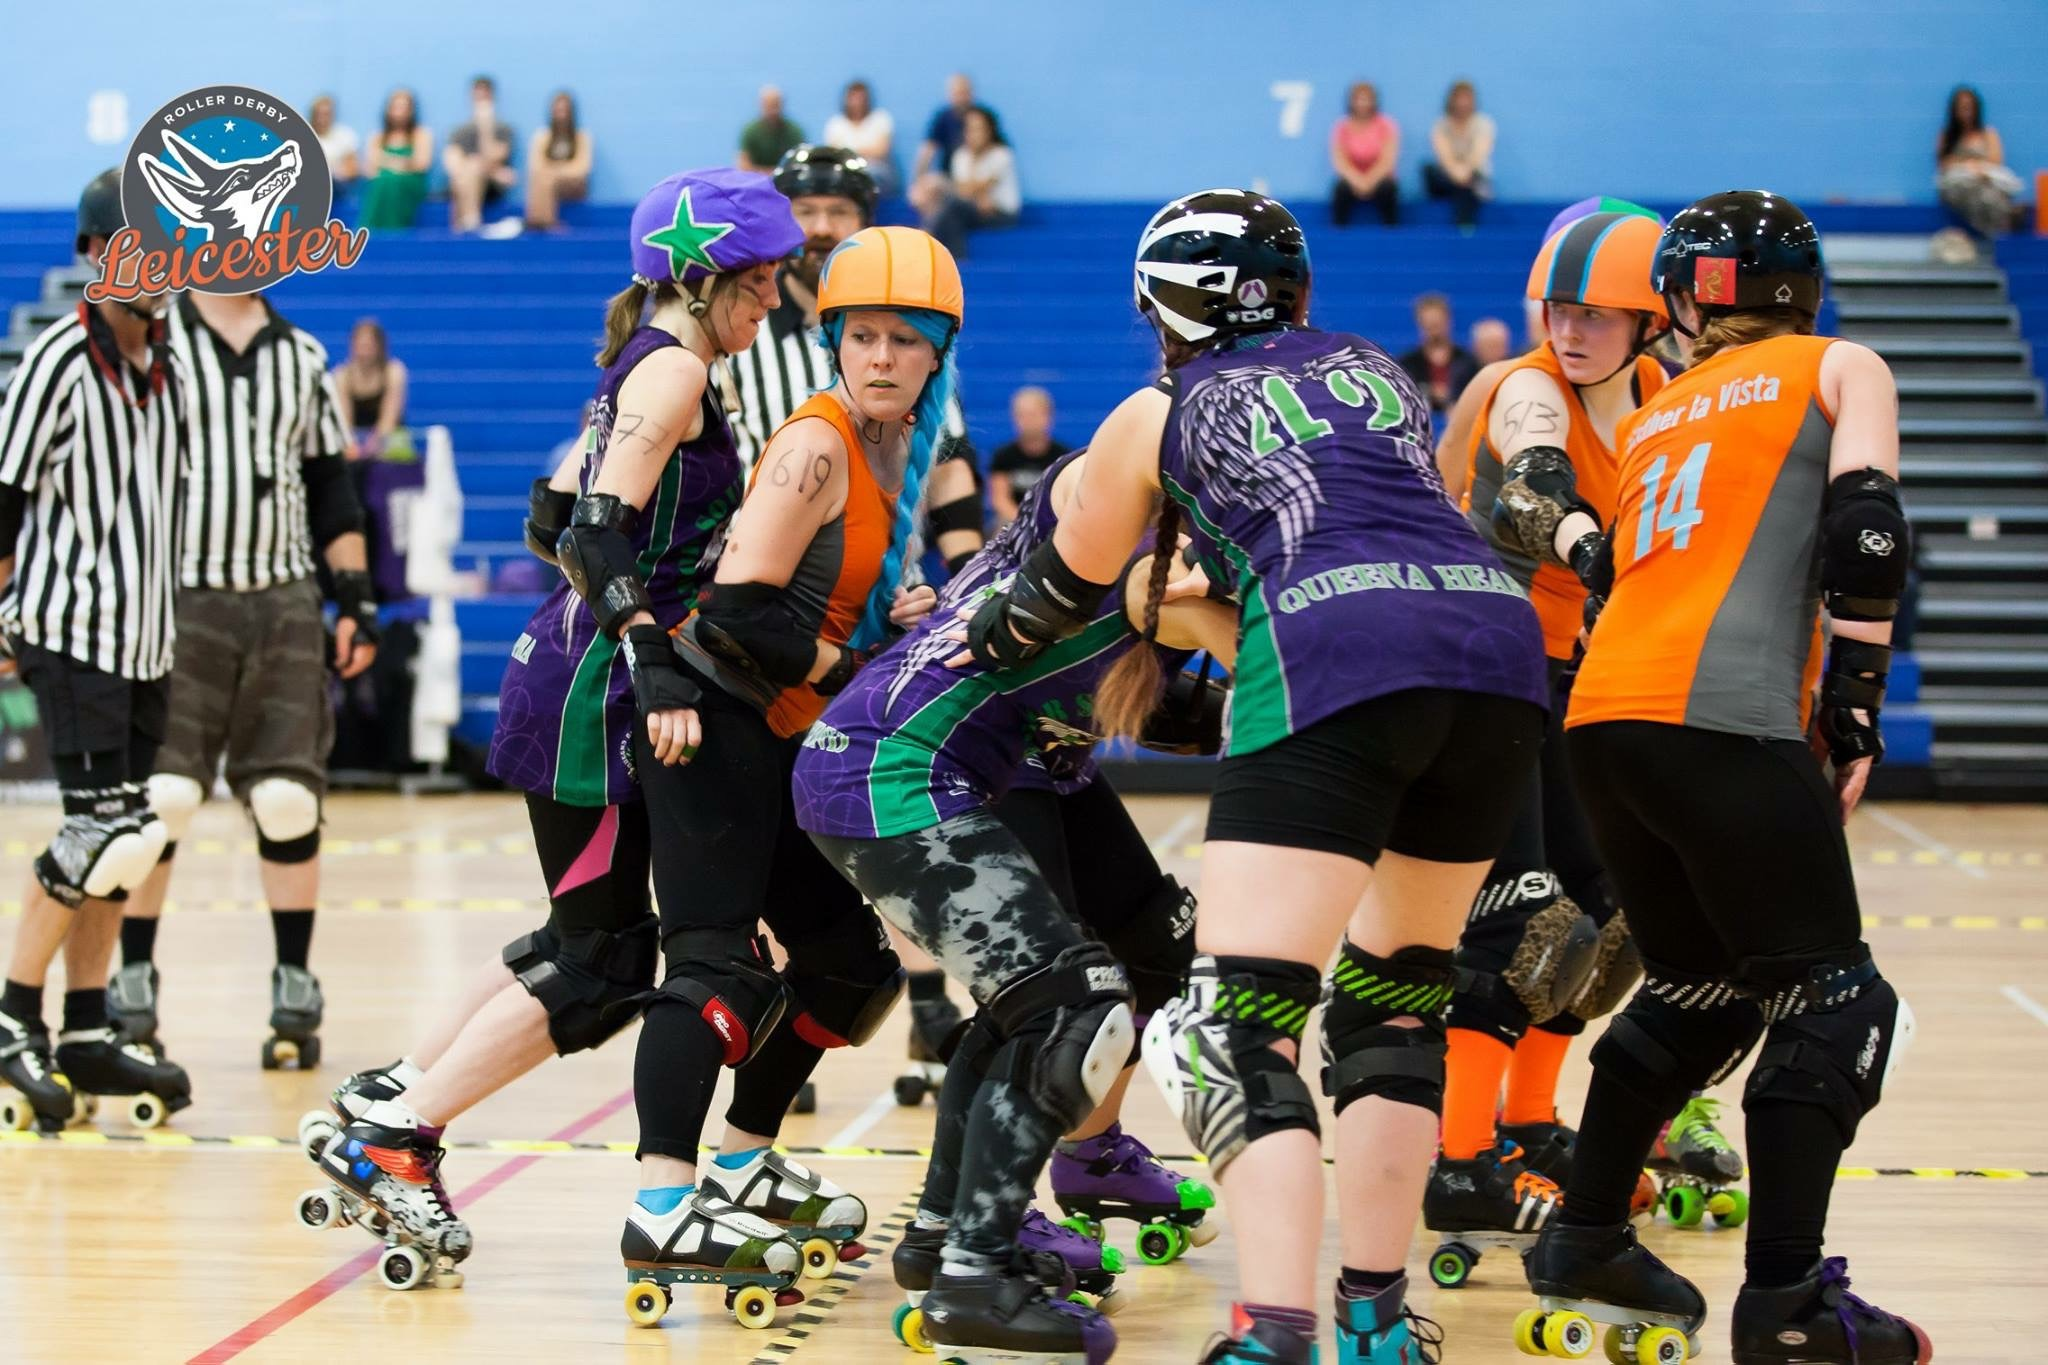 RDL - photo supplied by Roller Derby Leicester.